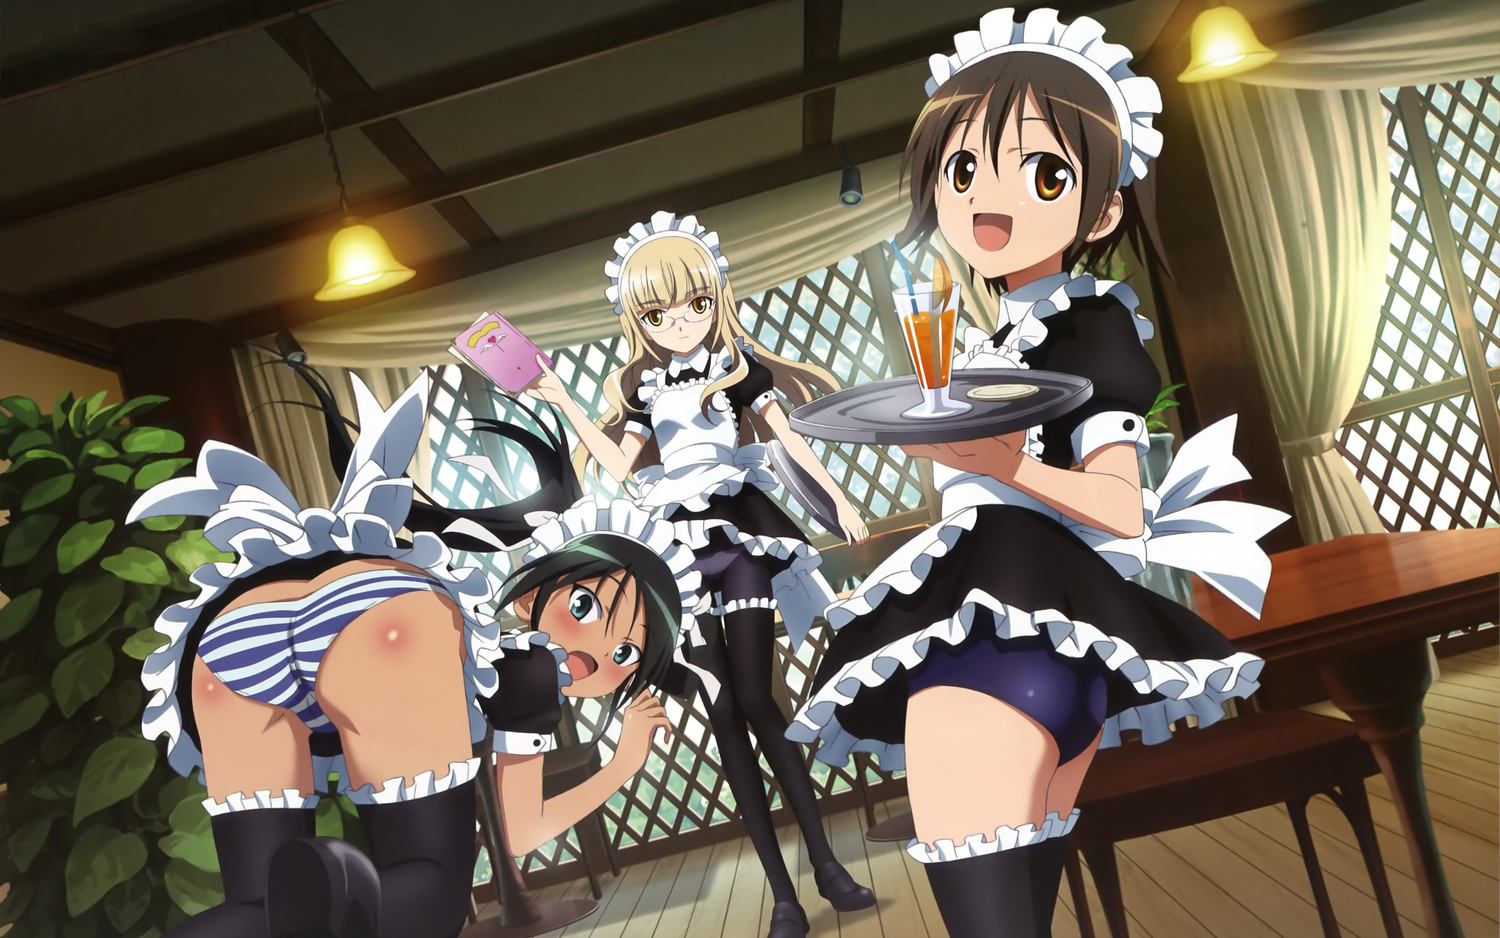 francesca_lucchini maid megami miyafuji_yoshika panties perrine-h_clostermann strike_witches striped_panties underwear